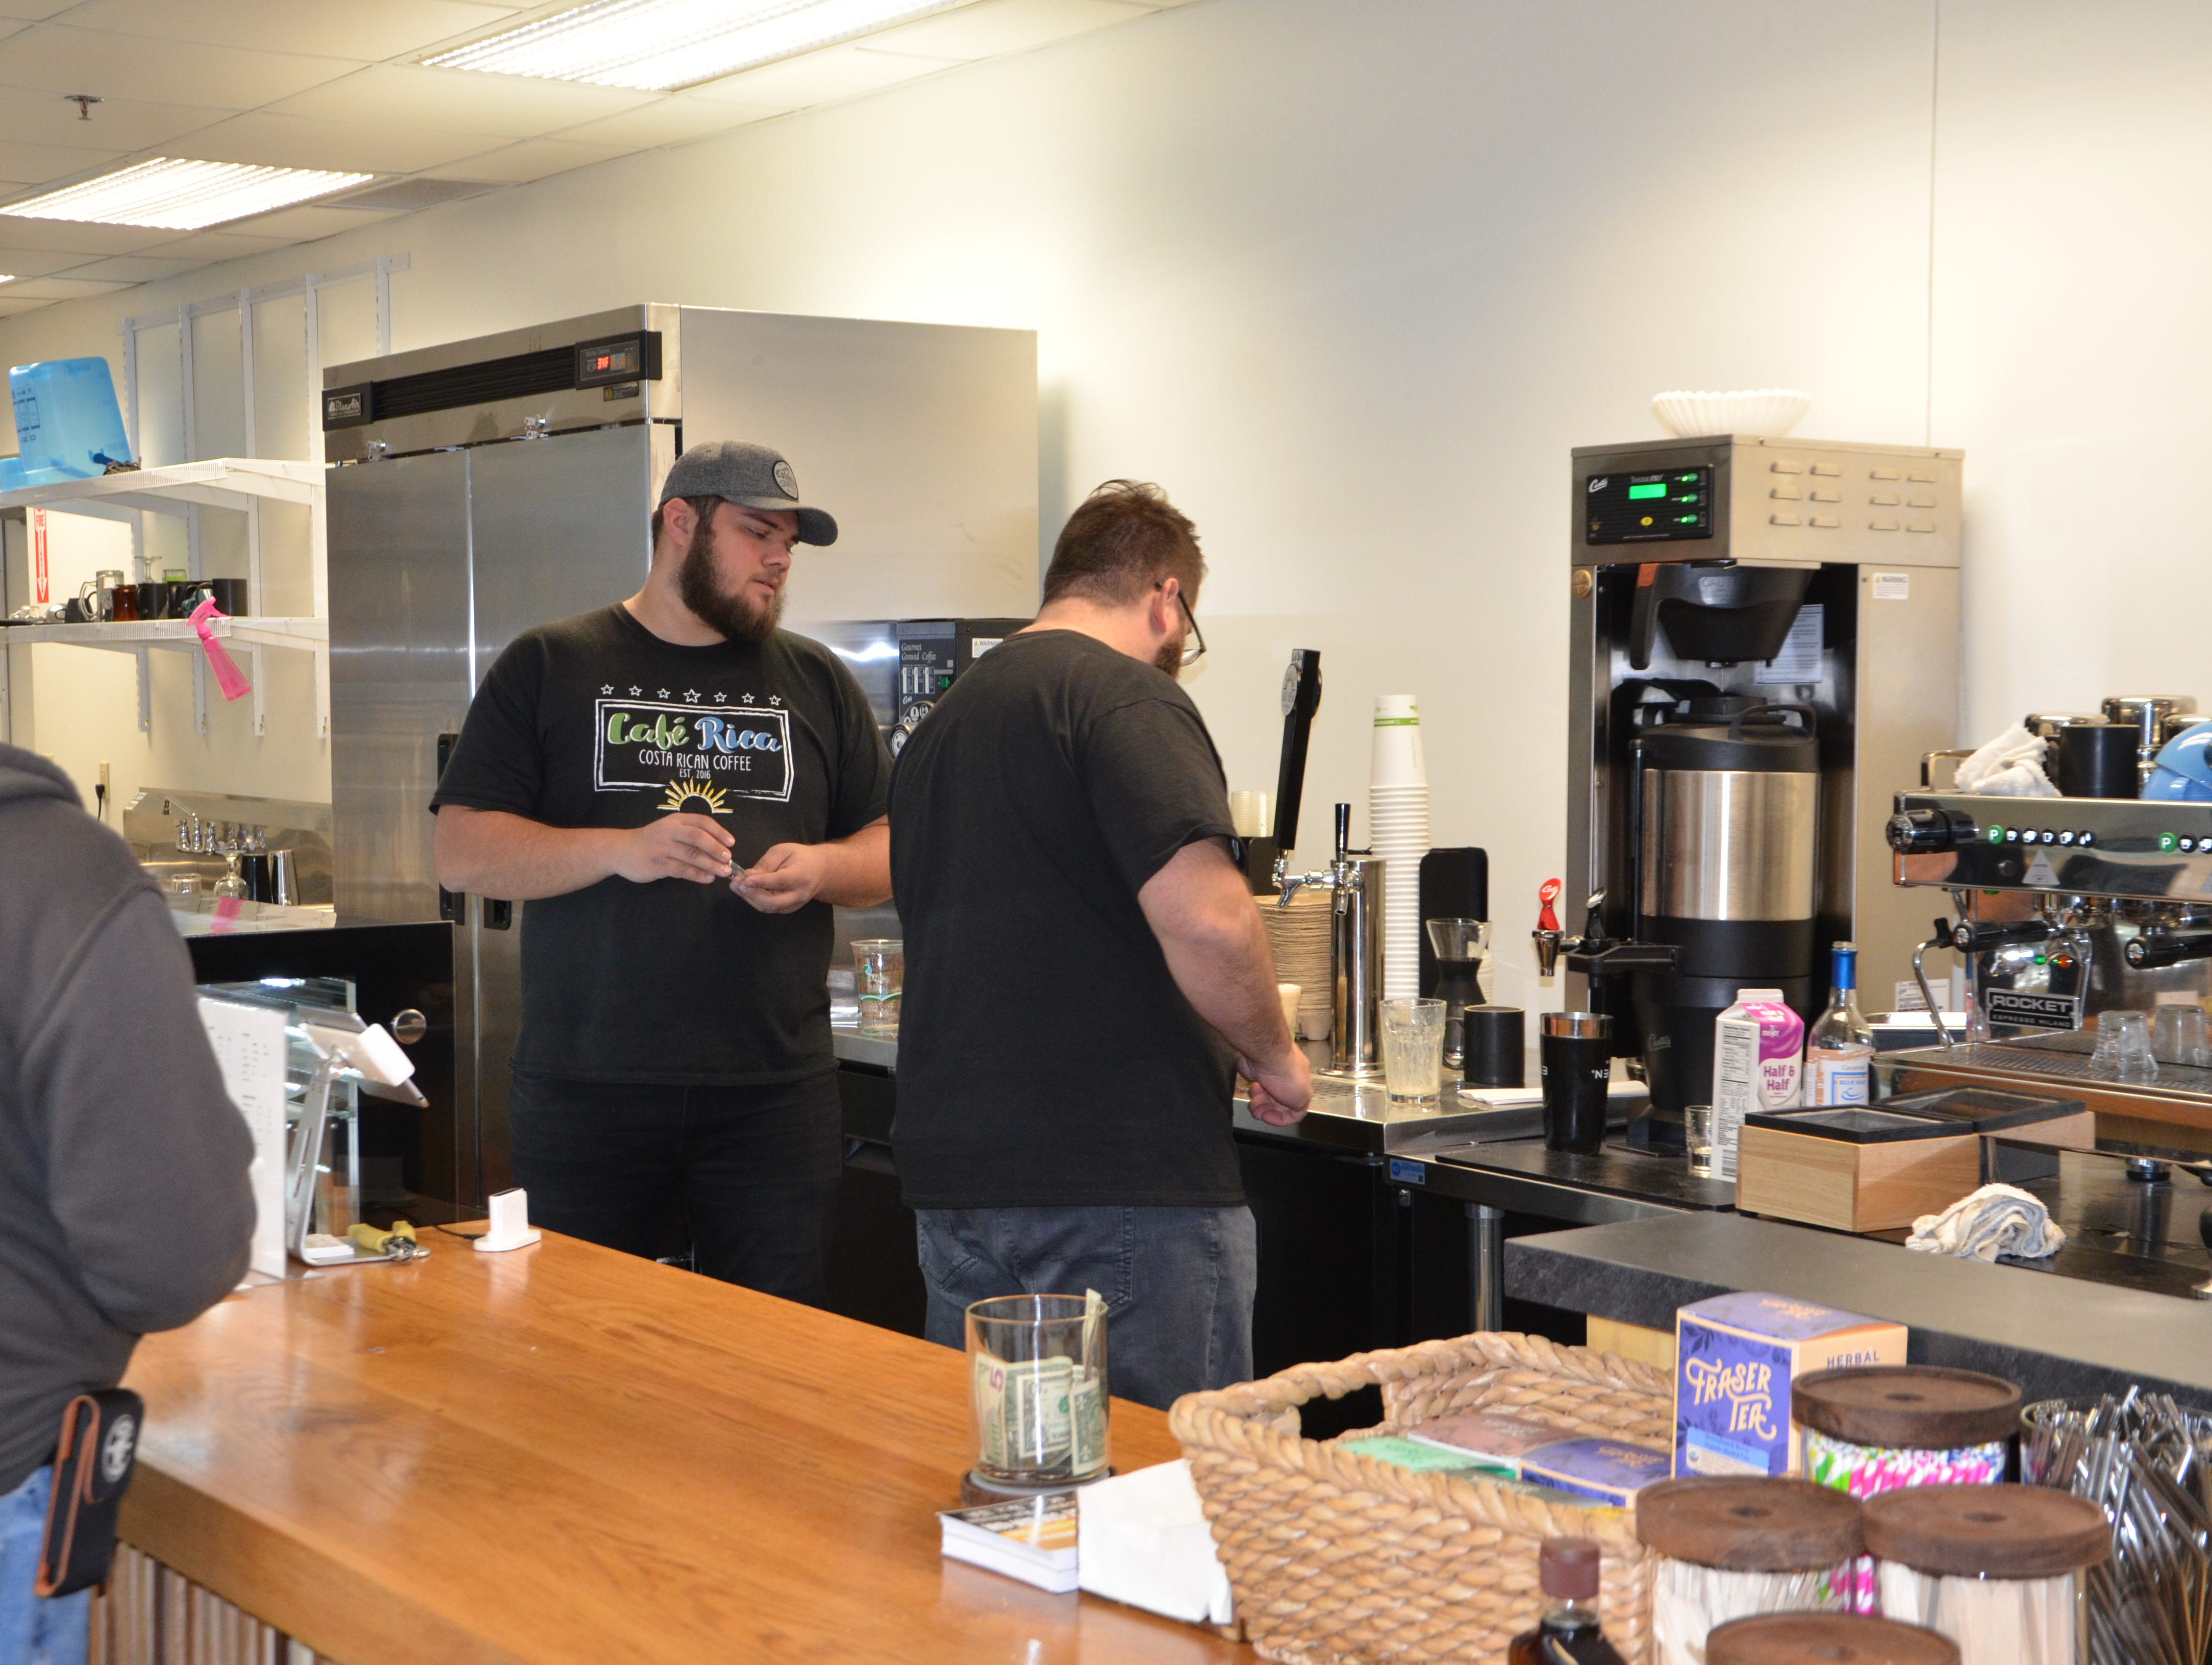 Cafe Rica, now at 80 West Michigan Ave., will be open seven days a week and has added espresso drinks, Continental Pastries & Deli baked goods, specialty teas and more to its menu.